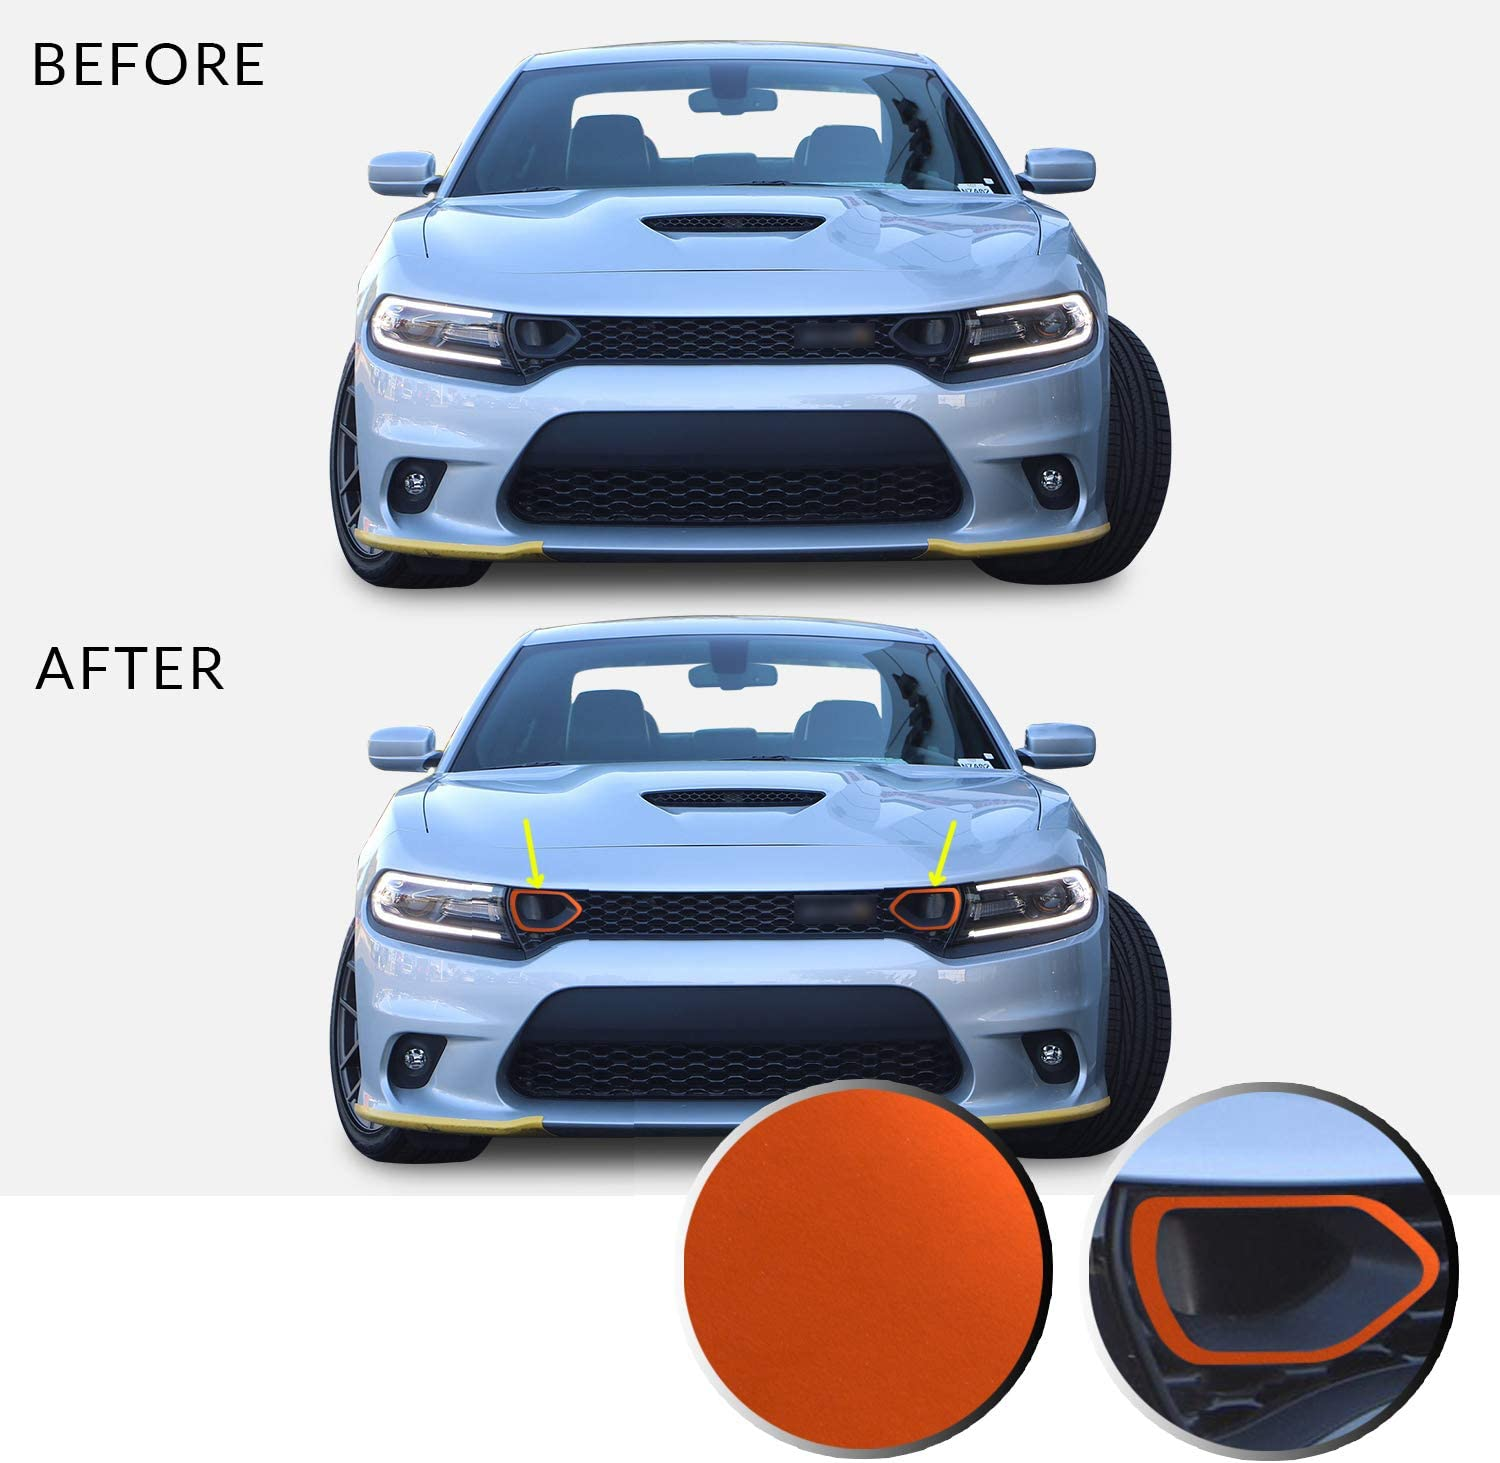 Front Upper Grille Bezel Vinyl Decal Overlay Trim Wrap Inserts Sticker Compatible with /& Fits Charger Scat Pack 2019 2020 Metallic Matte Chrome Orange